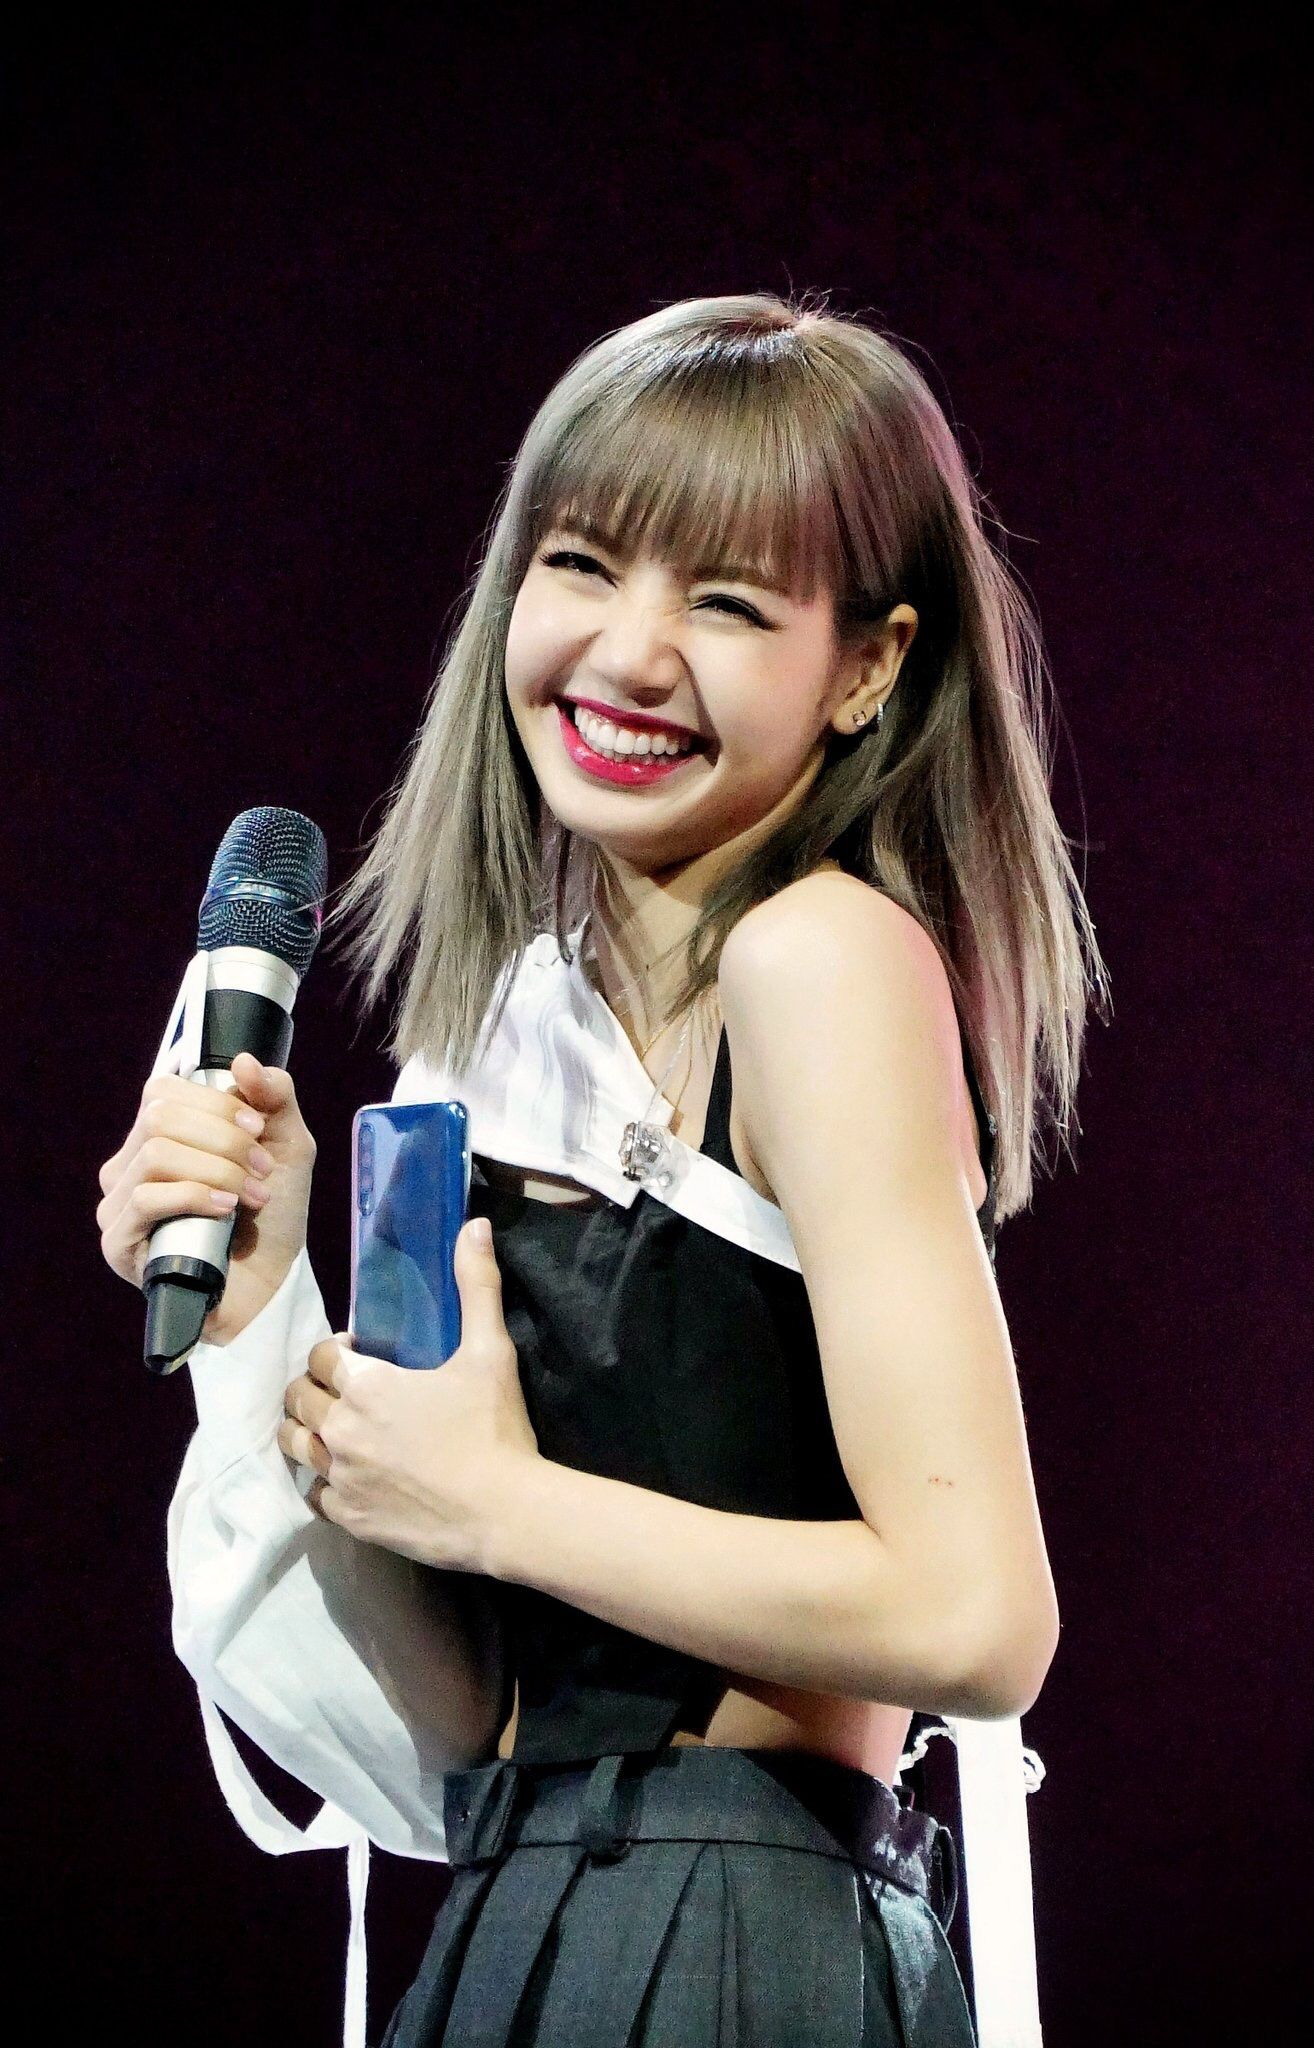 Lisa Samsung Galaxy A Event Lisa Lalisamanoban